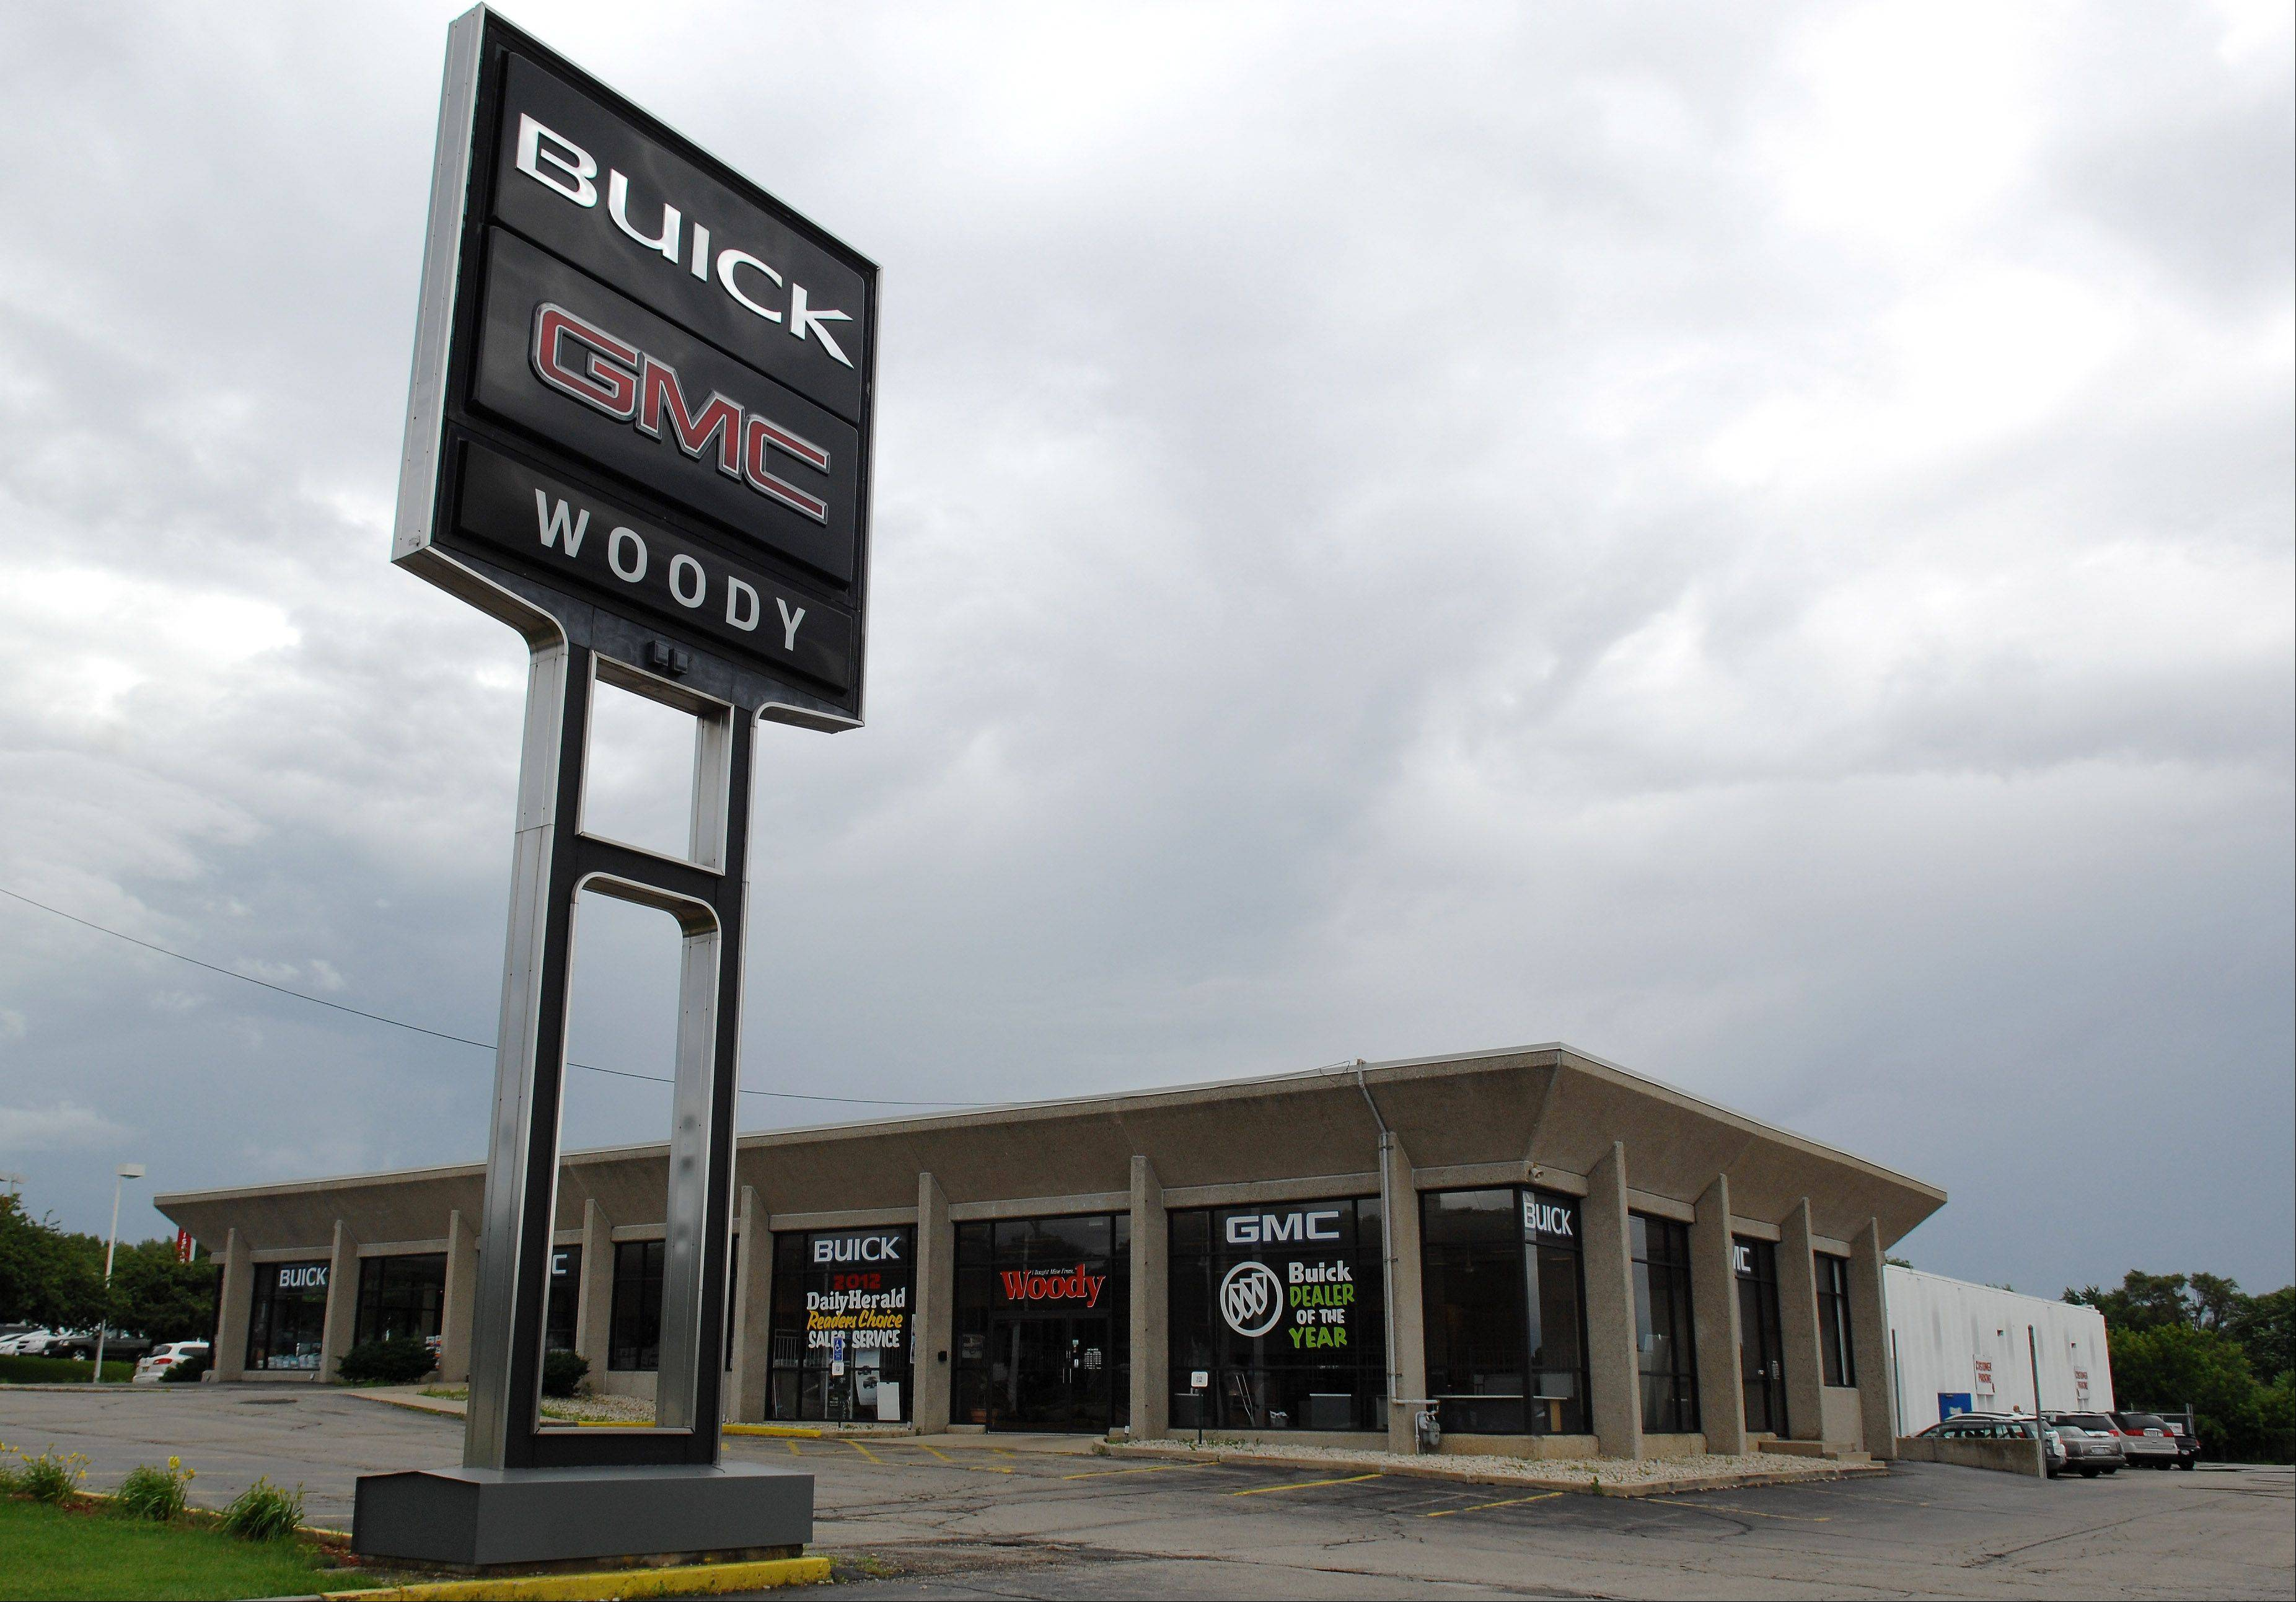 Woody Buick in Elgin is closing, with its owner saying he could not afford the $1.5 million building upgrade demanded by GMC.